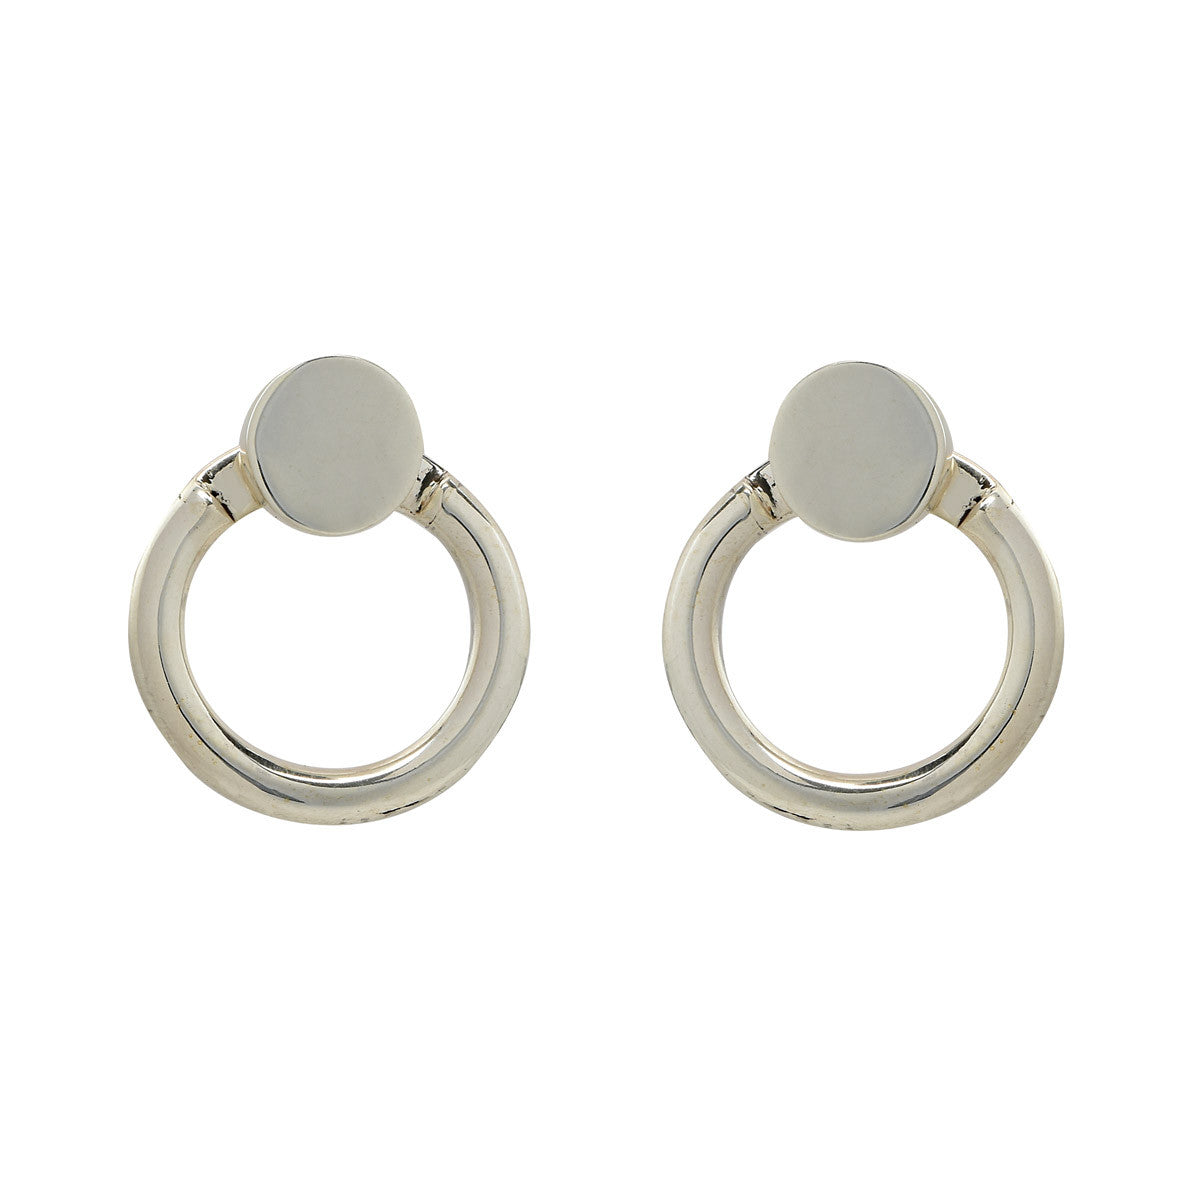 Silver Eclipse Earrings - René Habie